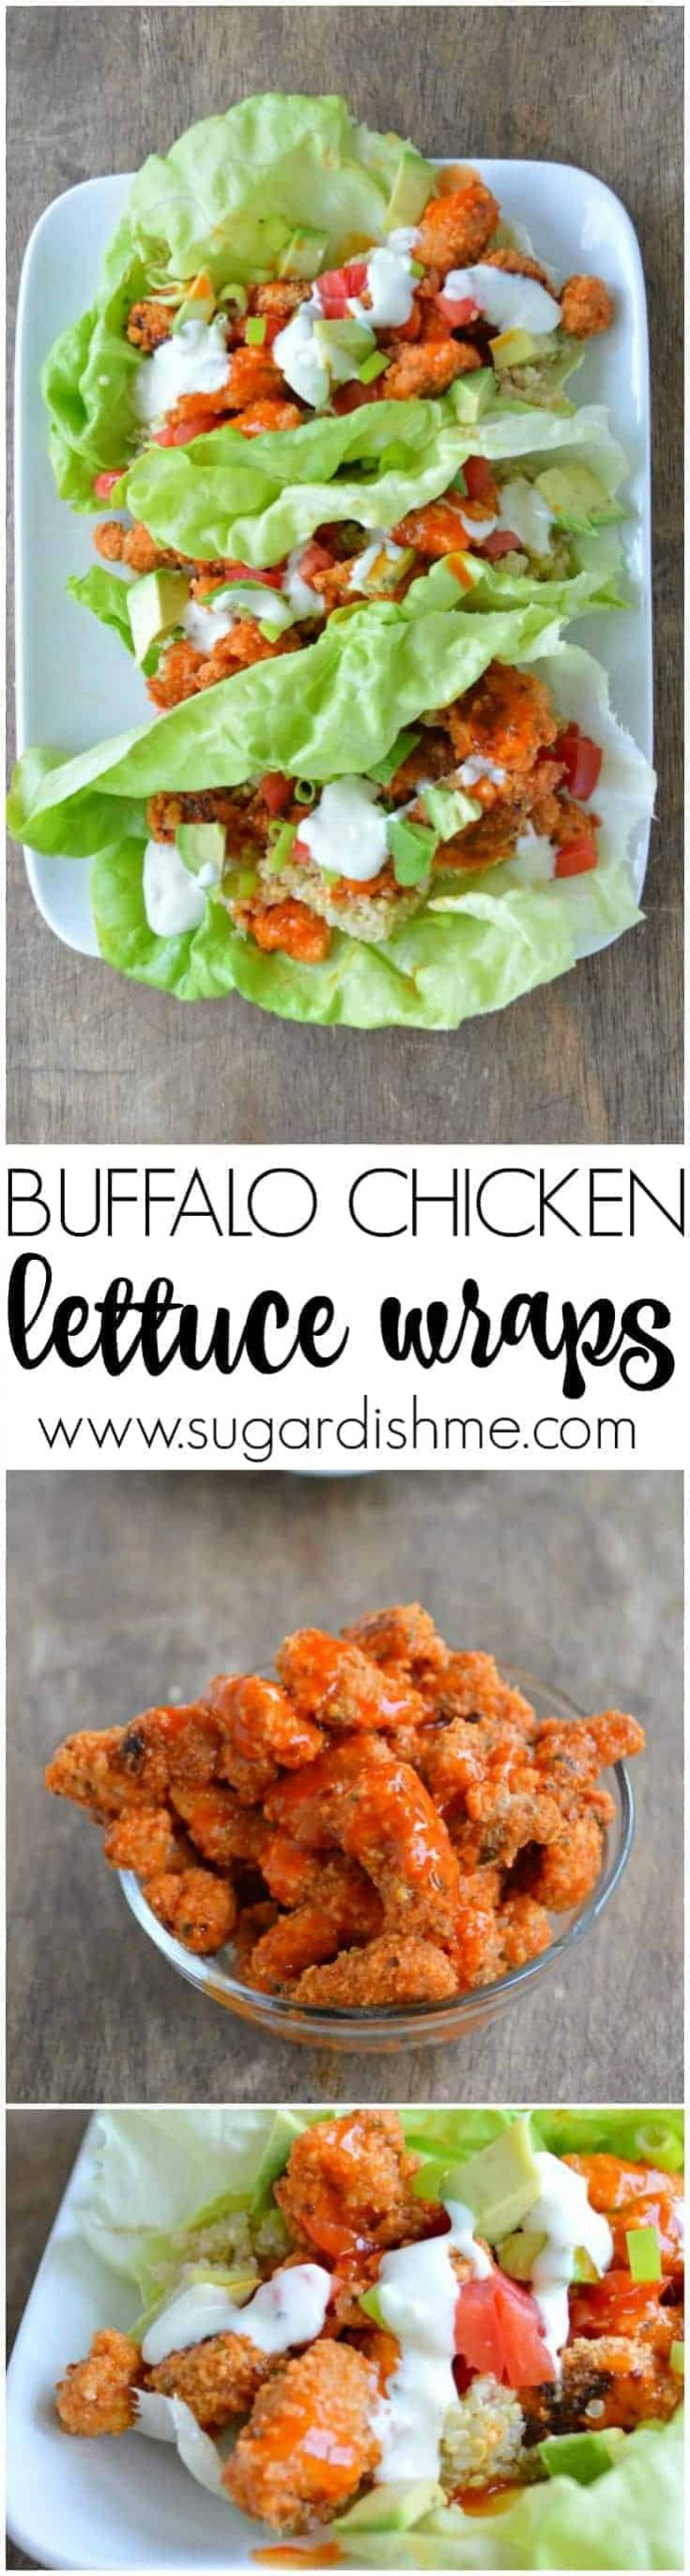 Buffalo Chicken Lettuce Wraps are a healthy and filling lunch or dinner your whole family will love. Note that prep time includes 30 minutes for the chicken to marinate.